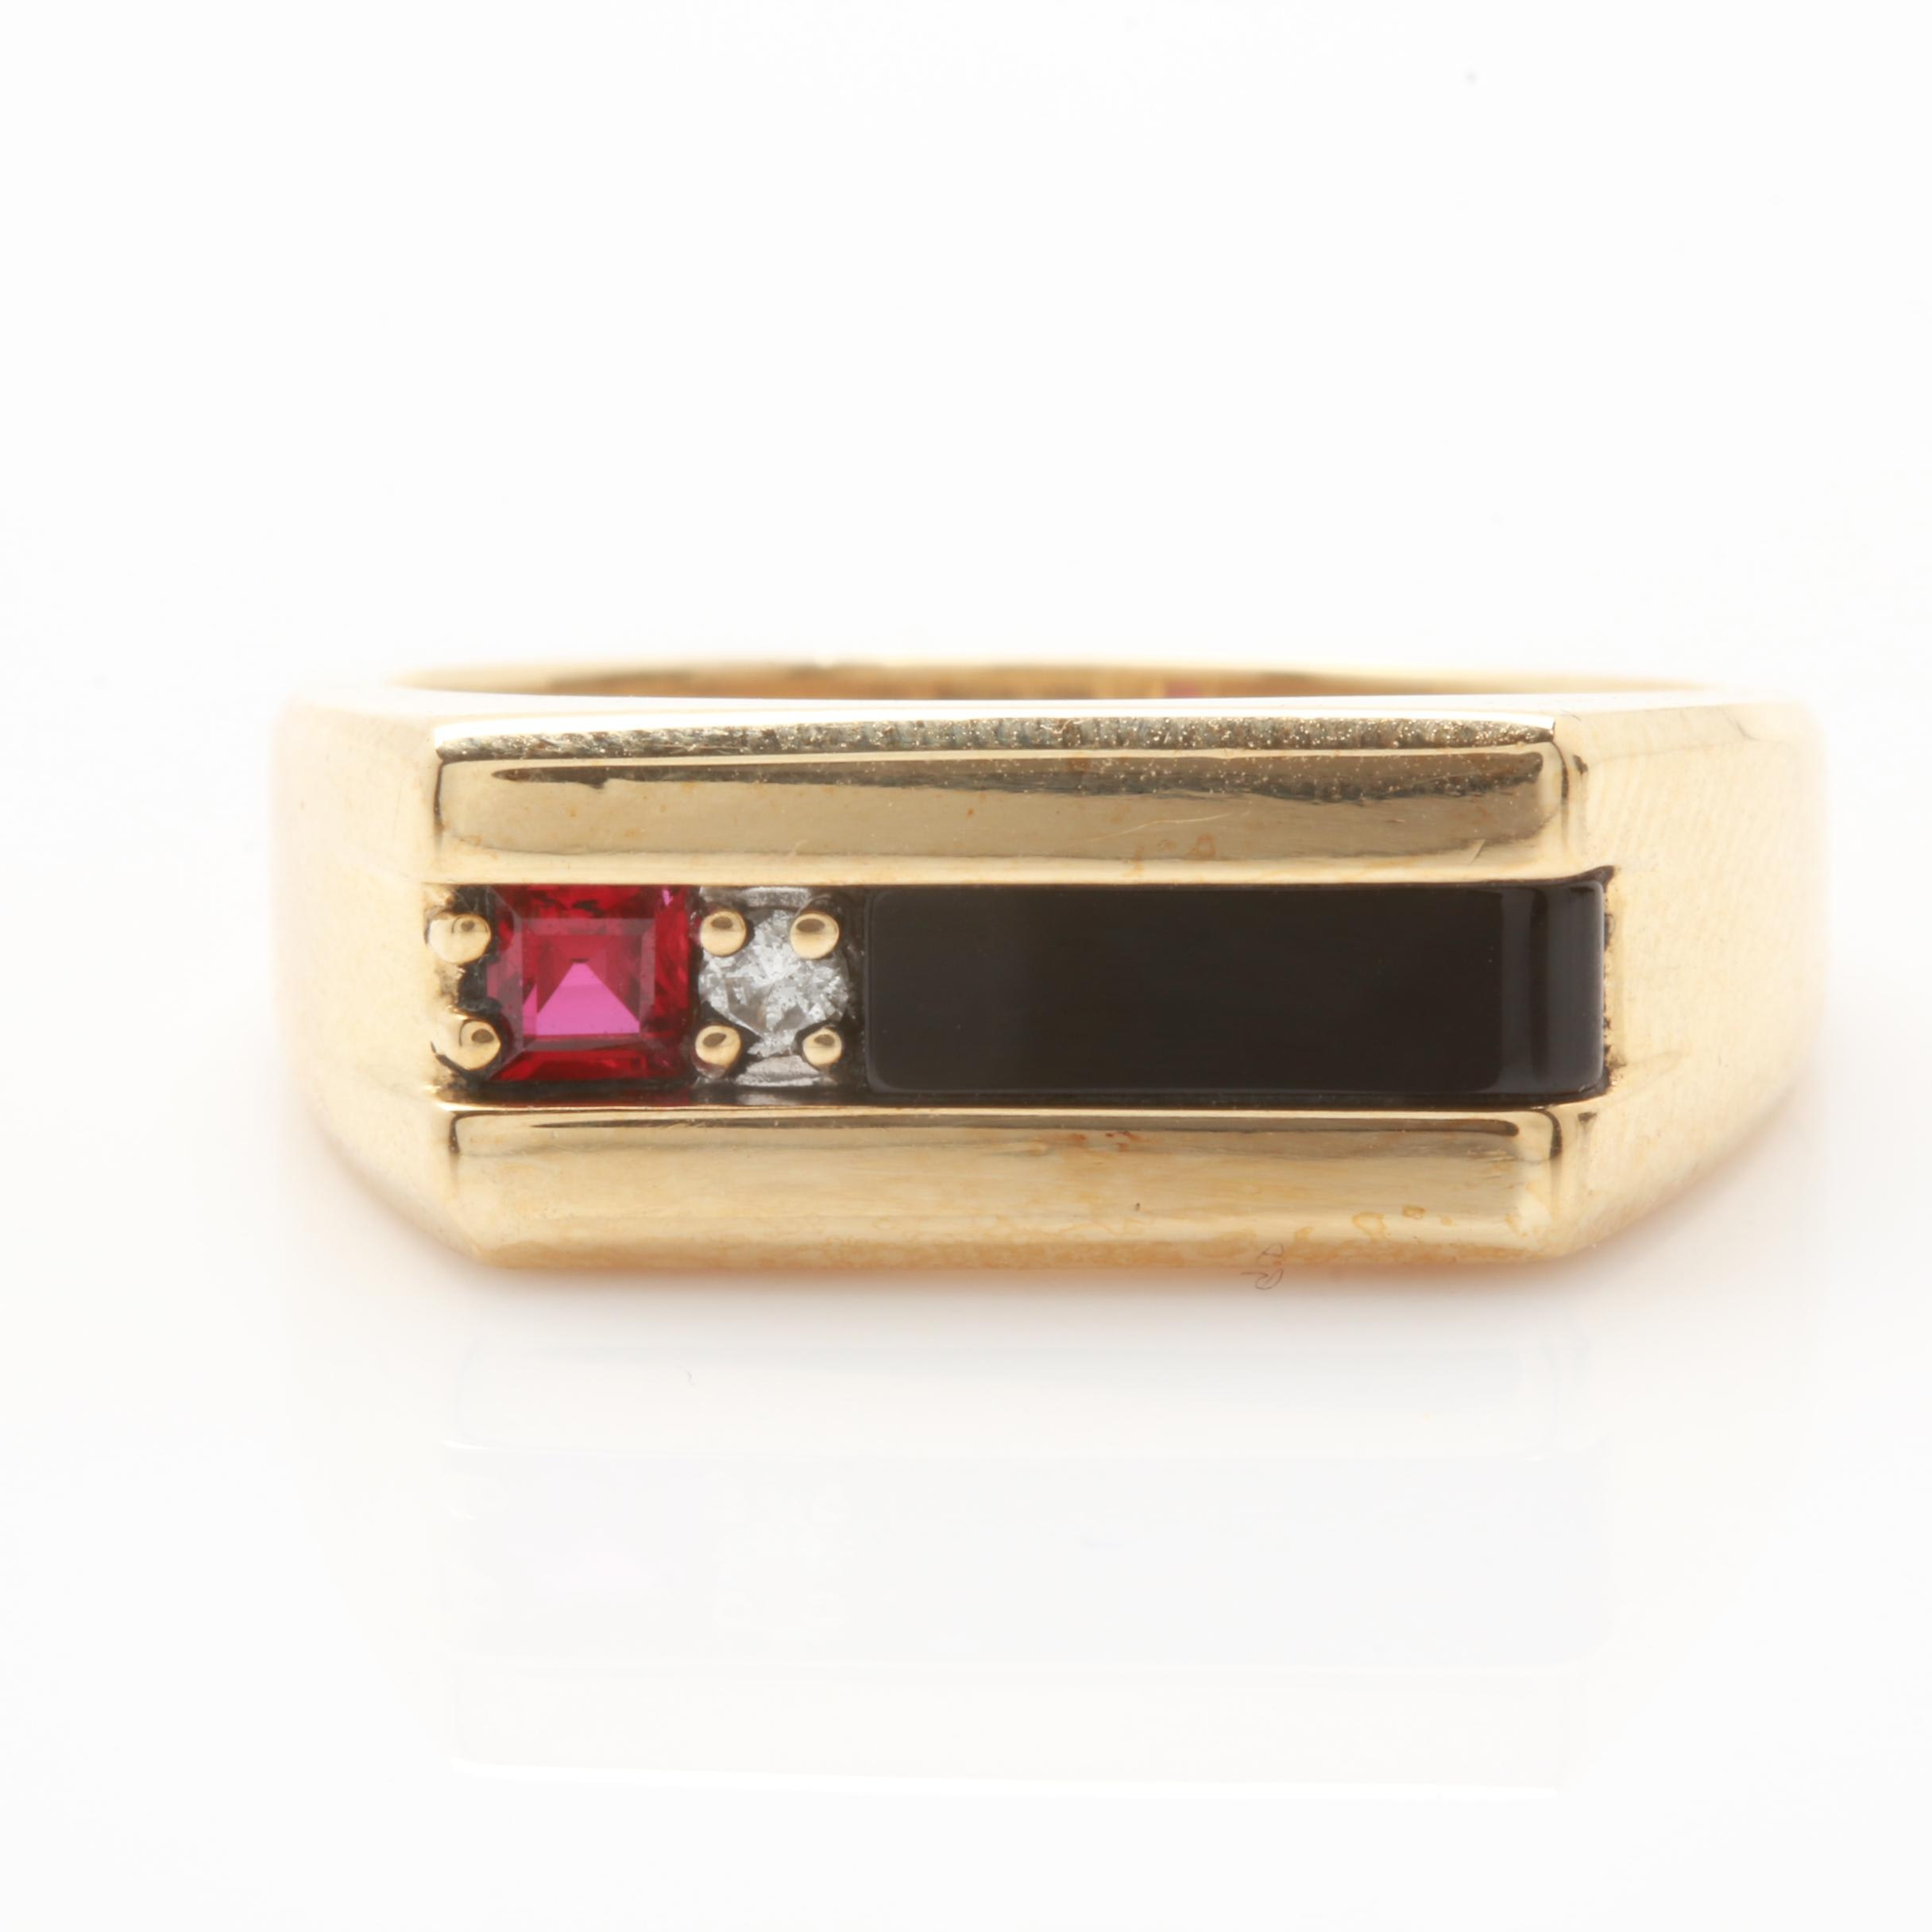 10K Yellow Gold Onyx Ring with a Synthetic Ruby and Diamond Accent